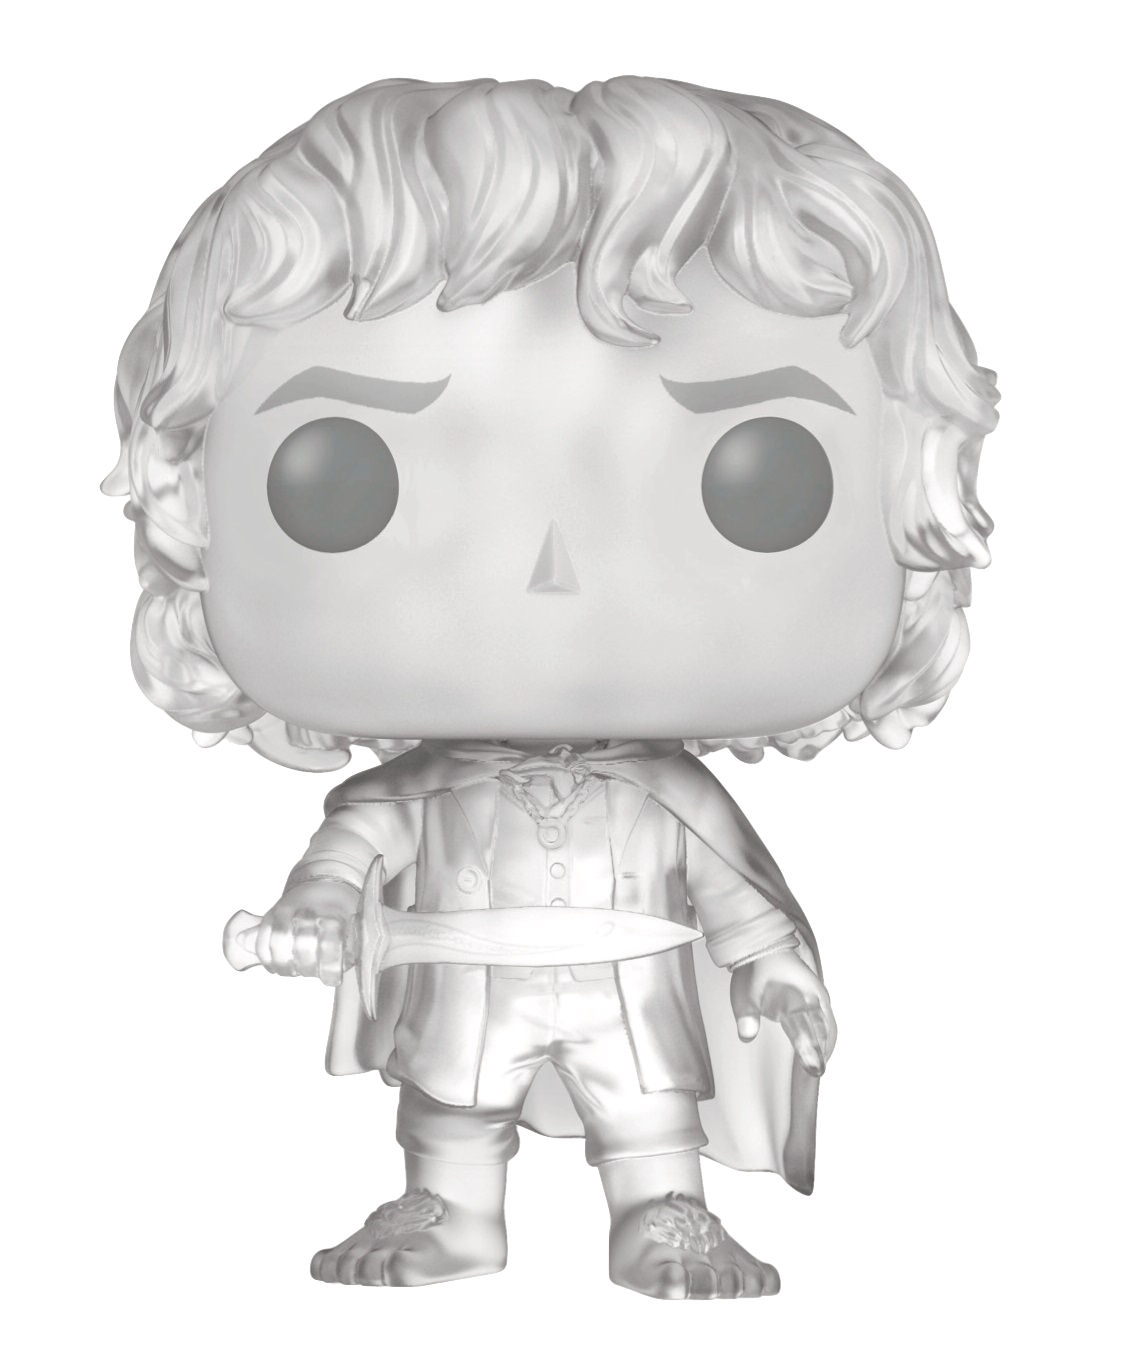 funko-movies-lord-of-the-rings-frodo-baggins-invisible-limited-toyslife